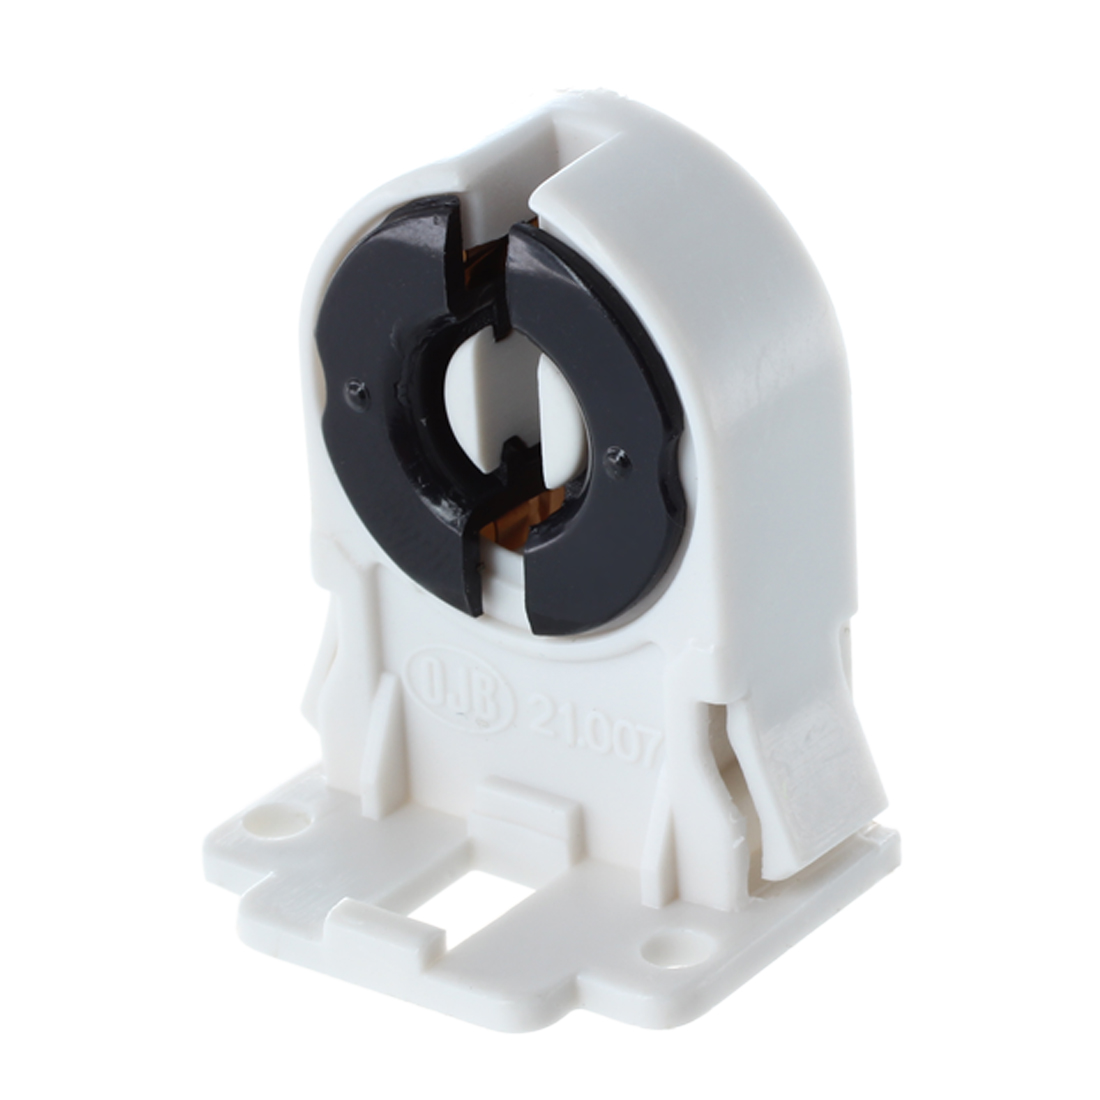 T8 Fluorescent Lighting Socket Lamp Holder